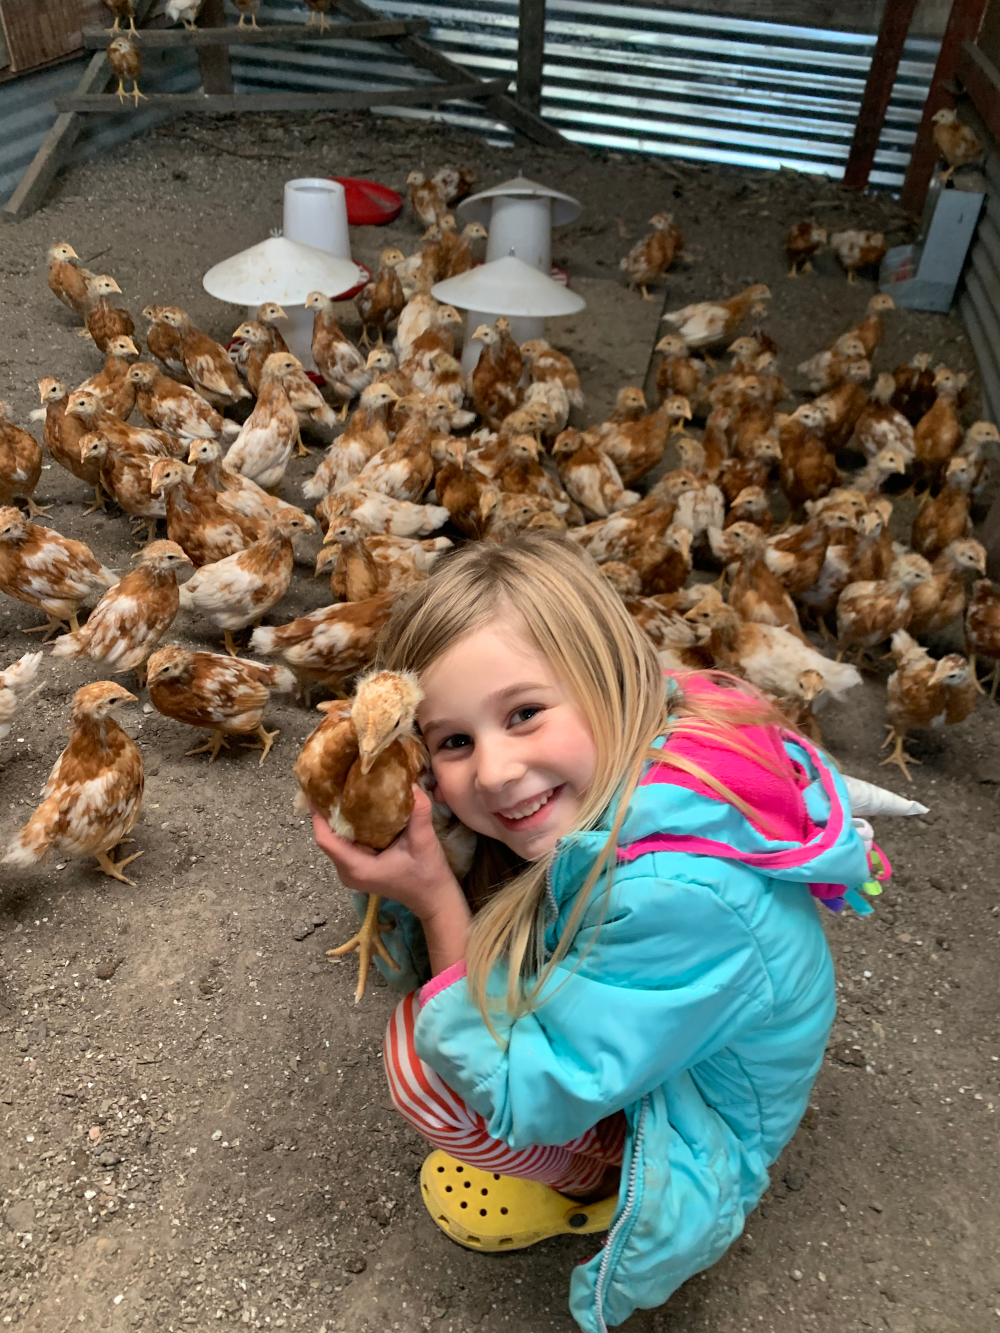 1st. Trudy Bruhn_helping take care of baby chicks and hens 1